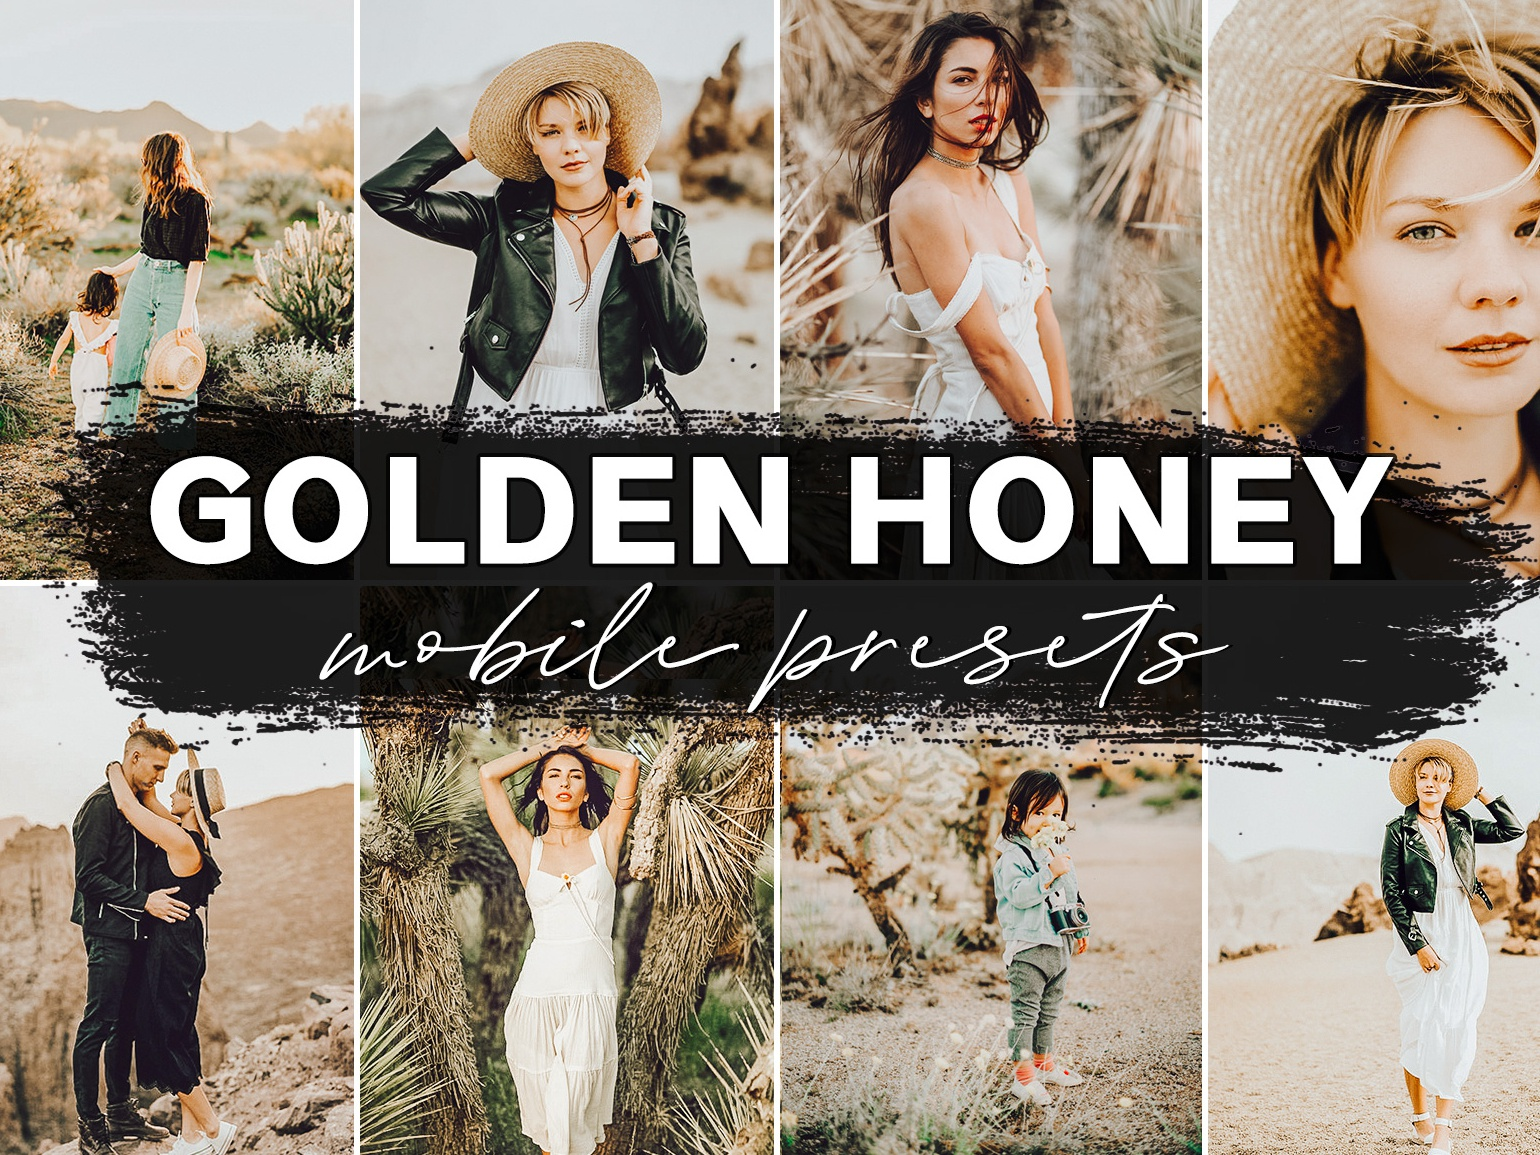 Lightroom Presets - Honey Warm Lightroom Mobile Presets lifestyle bright and airy home blogger hawaii presets instagram presets lightroom mobile lightroom instagram theme natural lightroom presets filters branding mobile blogger presets mobile instagram design wedding presets mobile presets honey preset india earl blogger presets